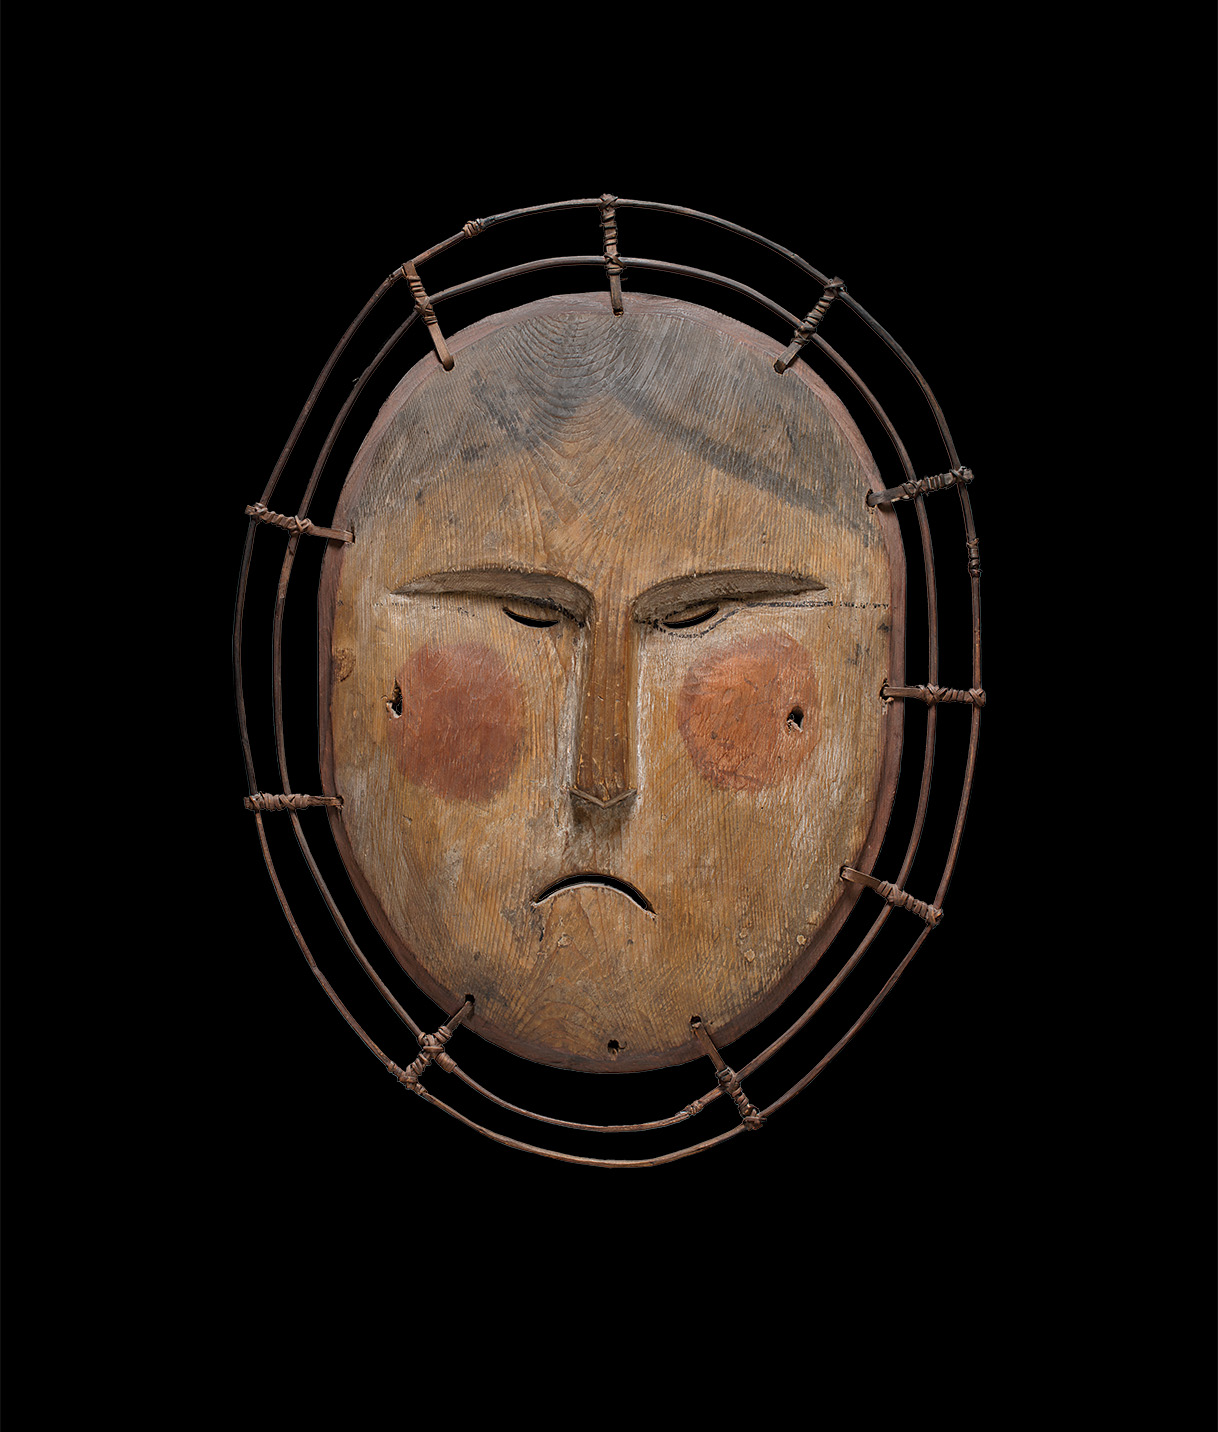 Central Yup'ik, Lower Yukon, Alaska. Dance mask, representing the Moon-Woman c.1870. Wood, pigment, vegetal fibers, sinew. Private collection. Photo by Craig Smith.